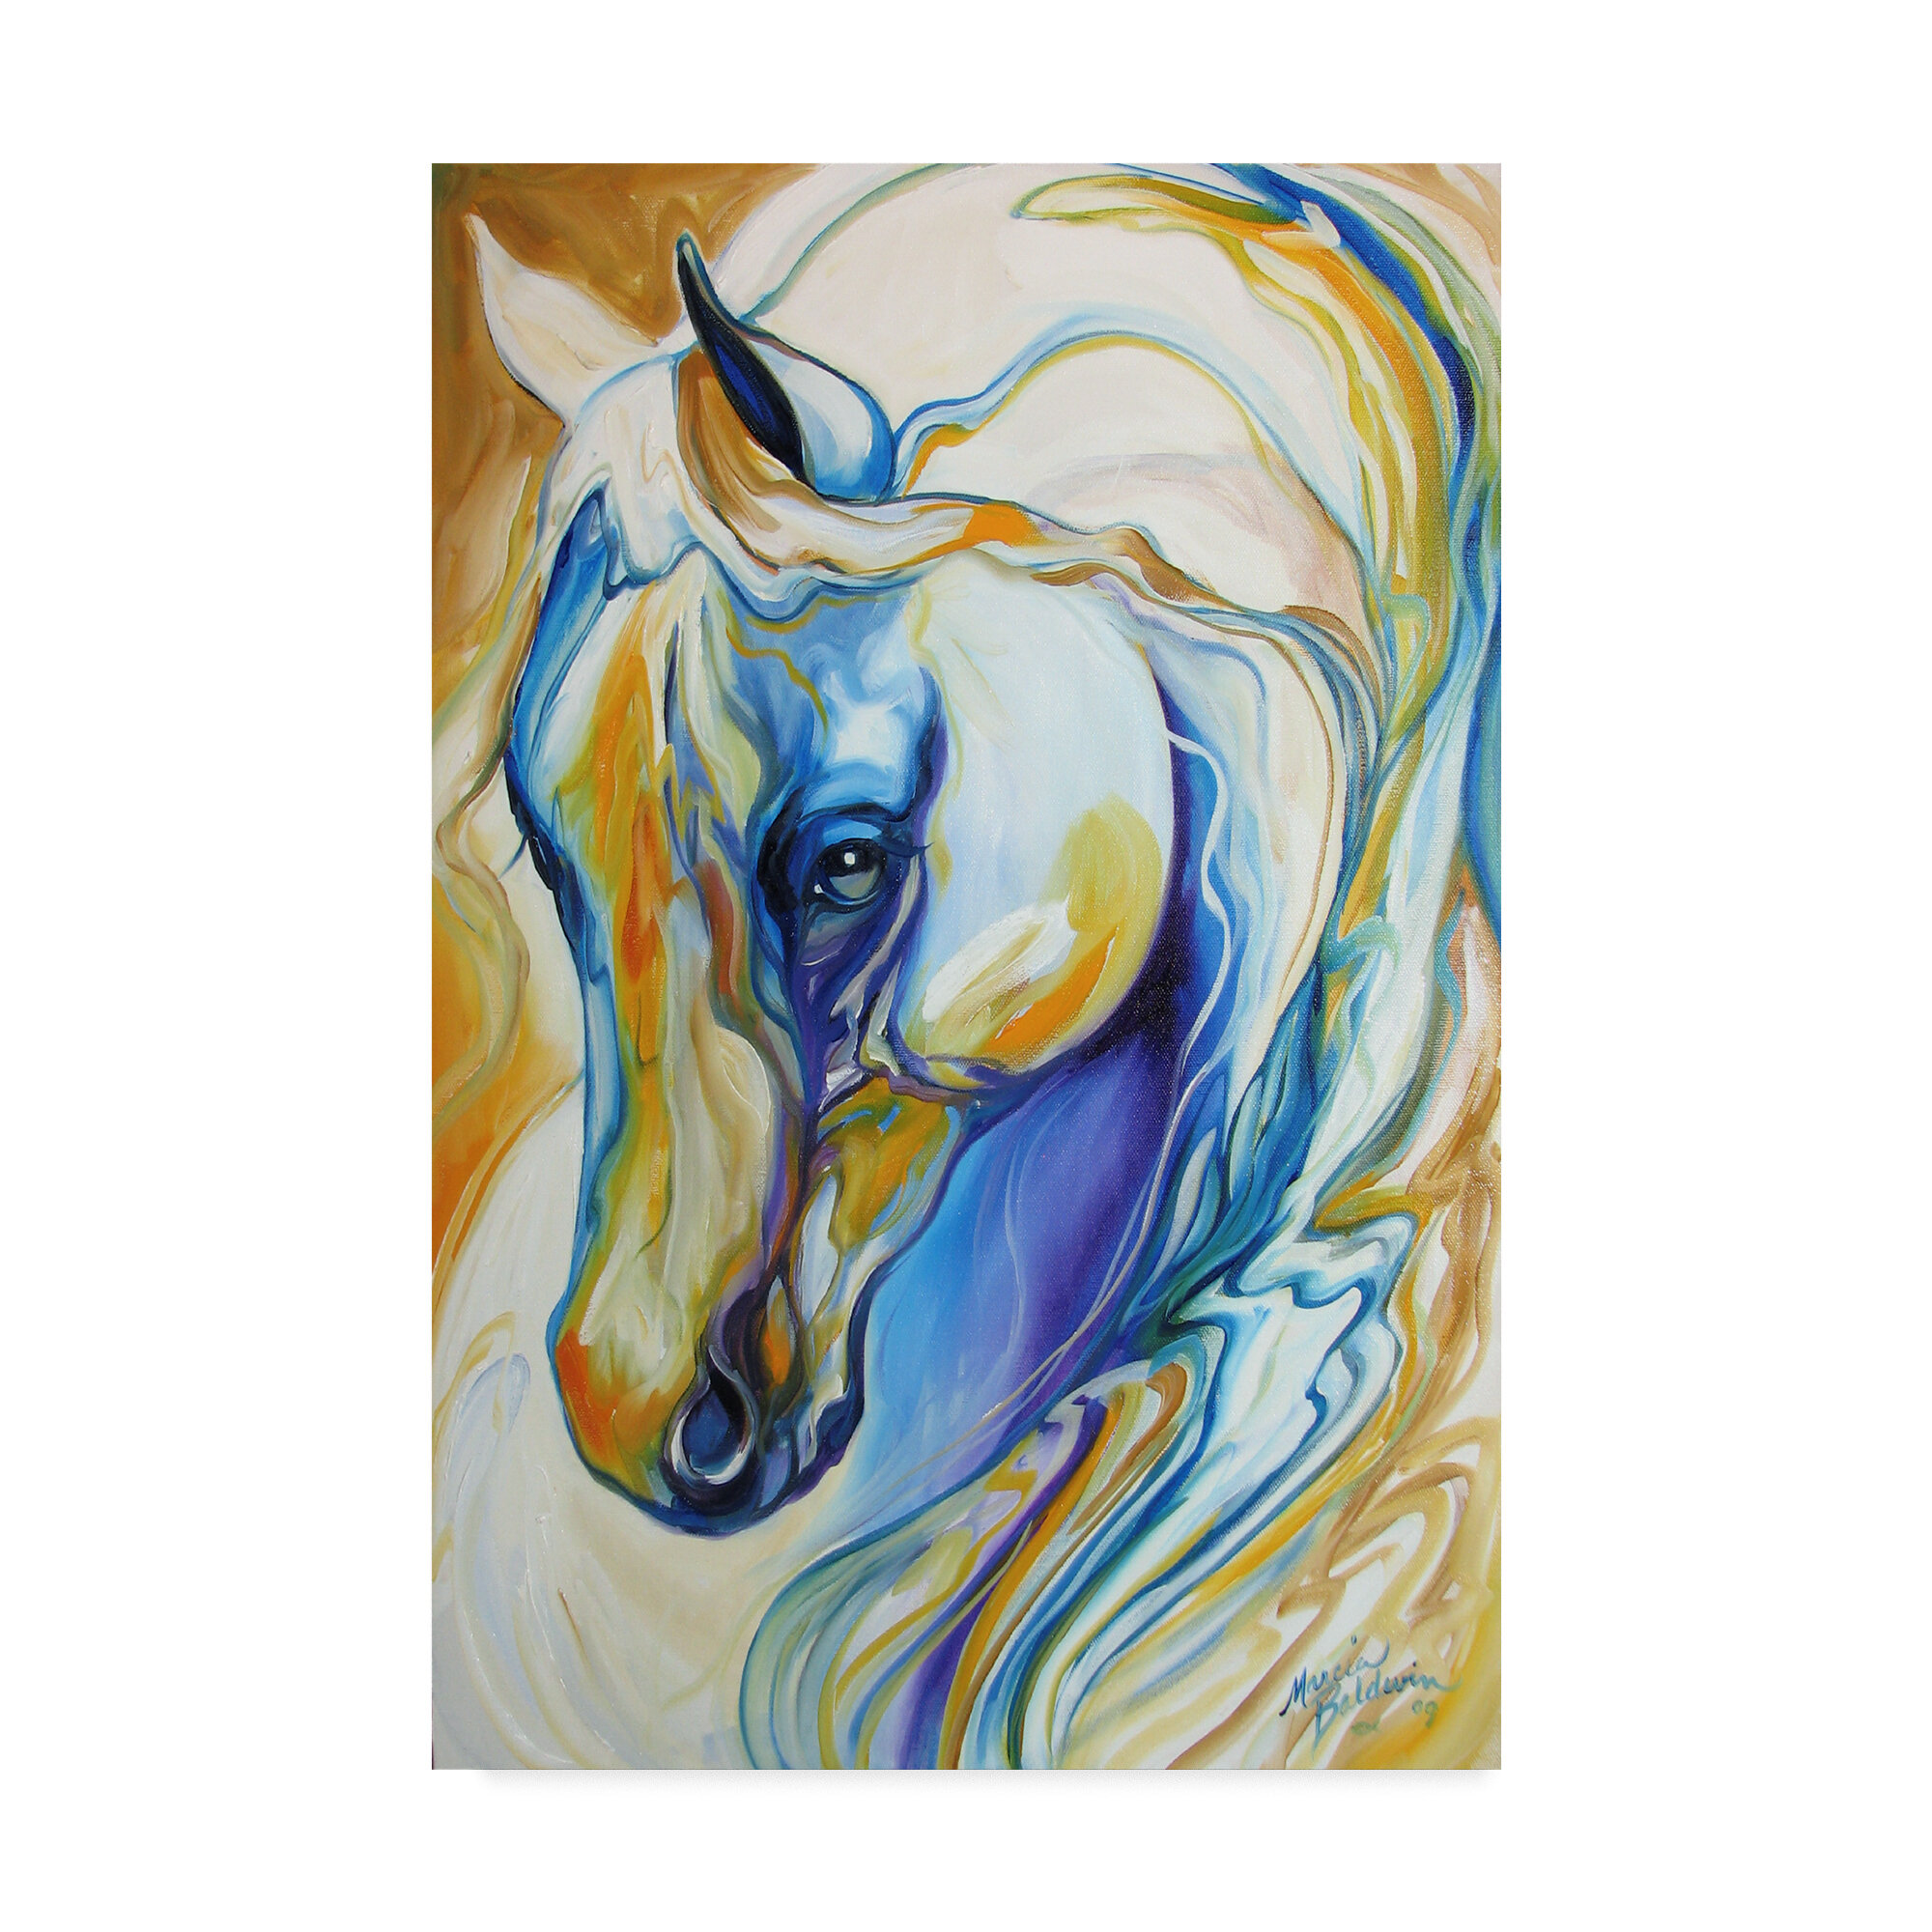 Trademark Art Arabian Abstract Acrylic Painting Print On Wrapped Canvas